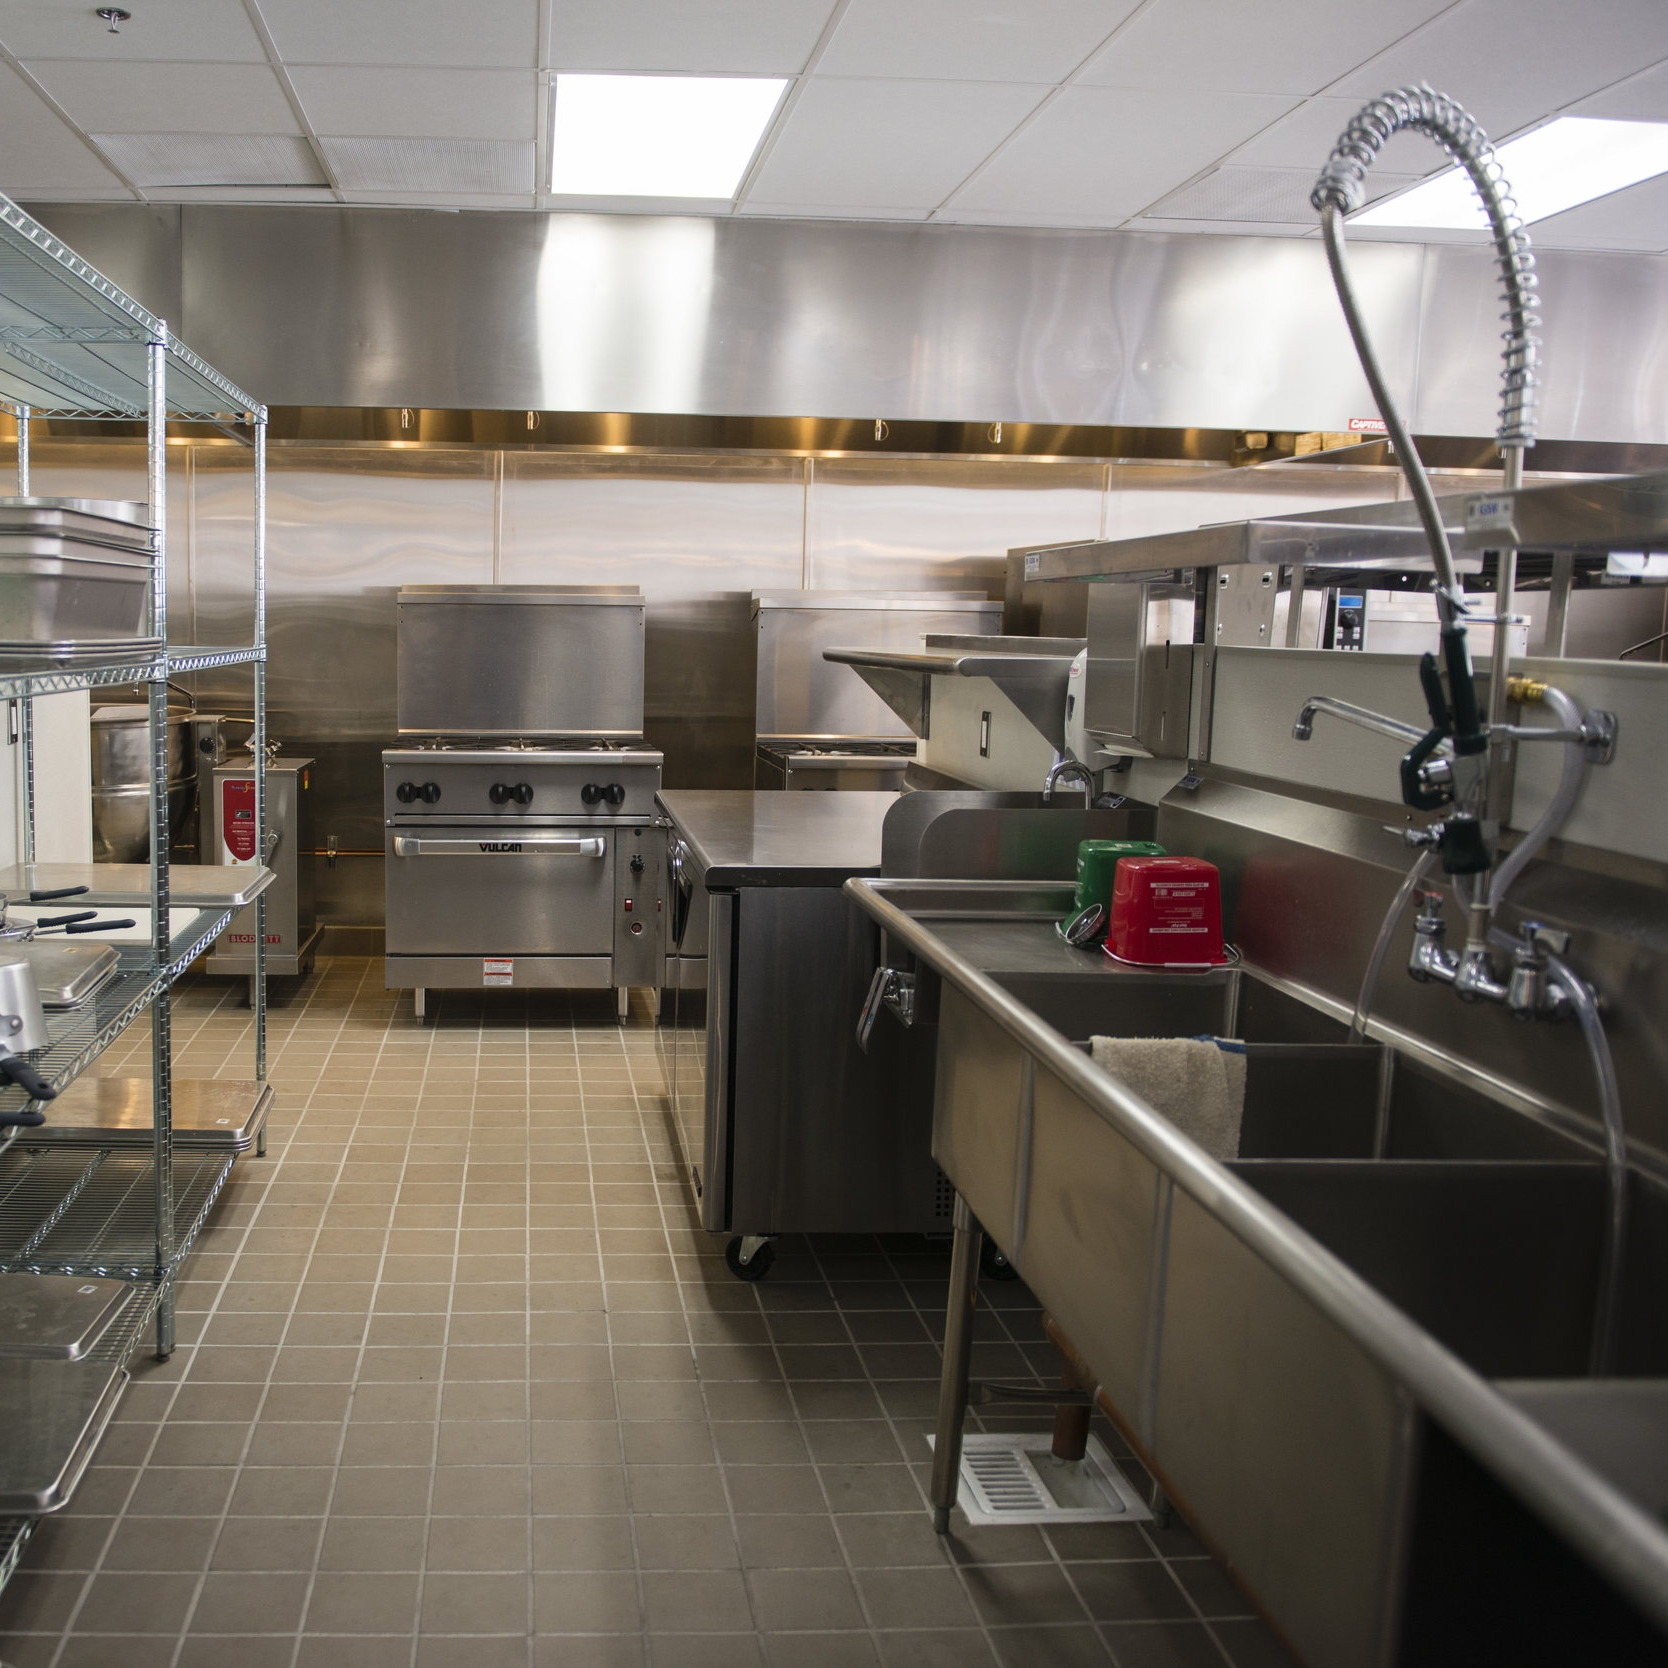 4th Street Market — East End Incubator Commercial Kitchens